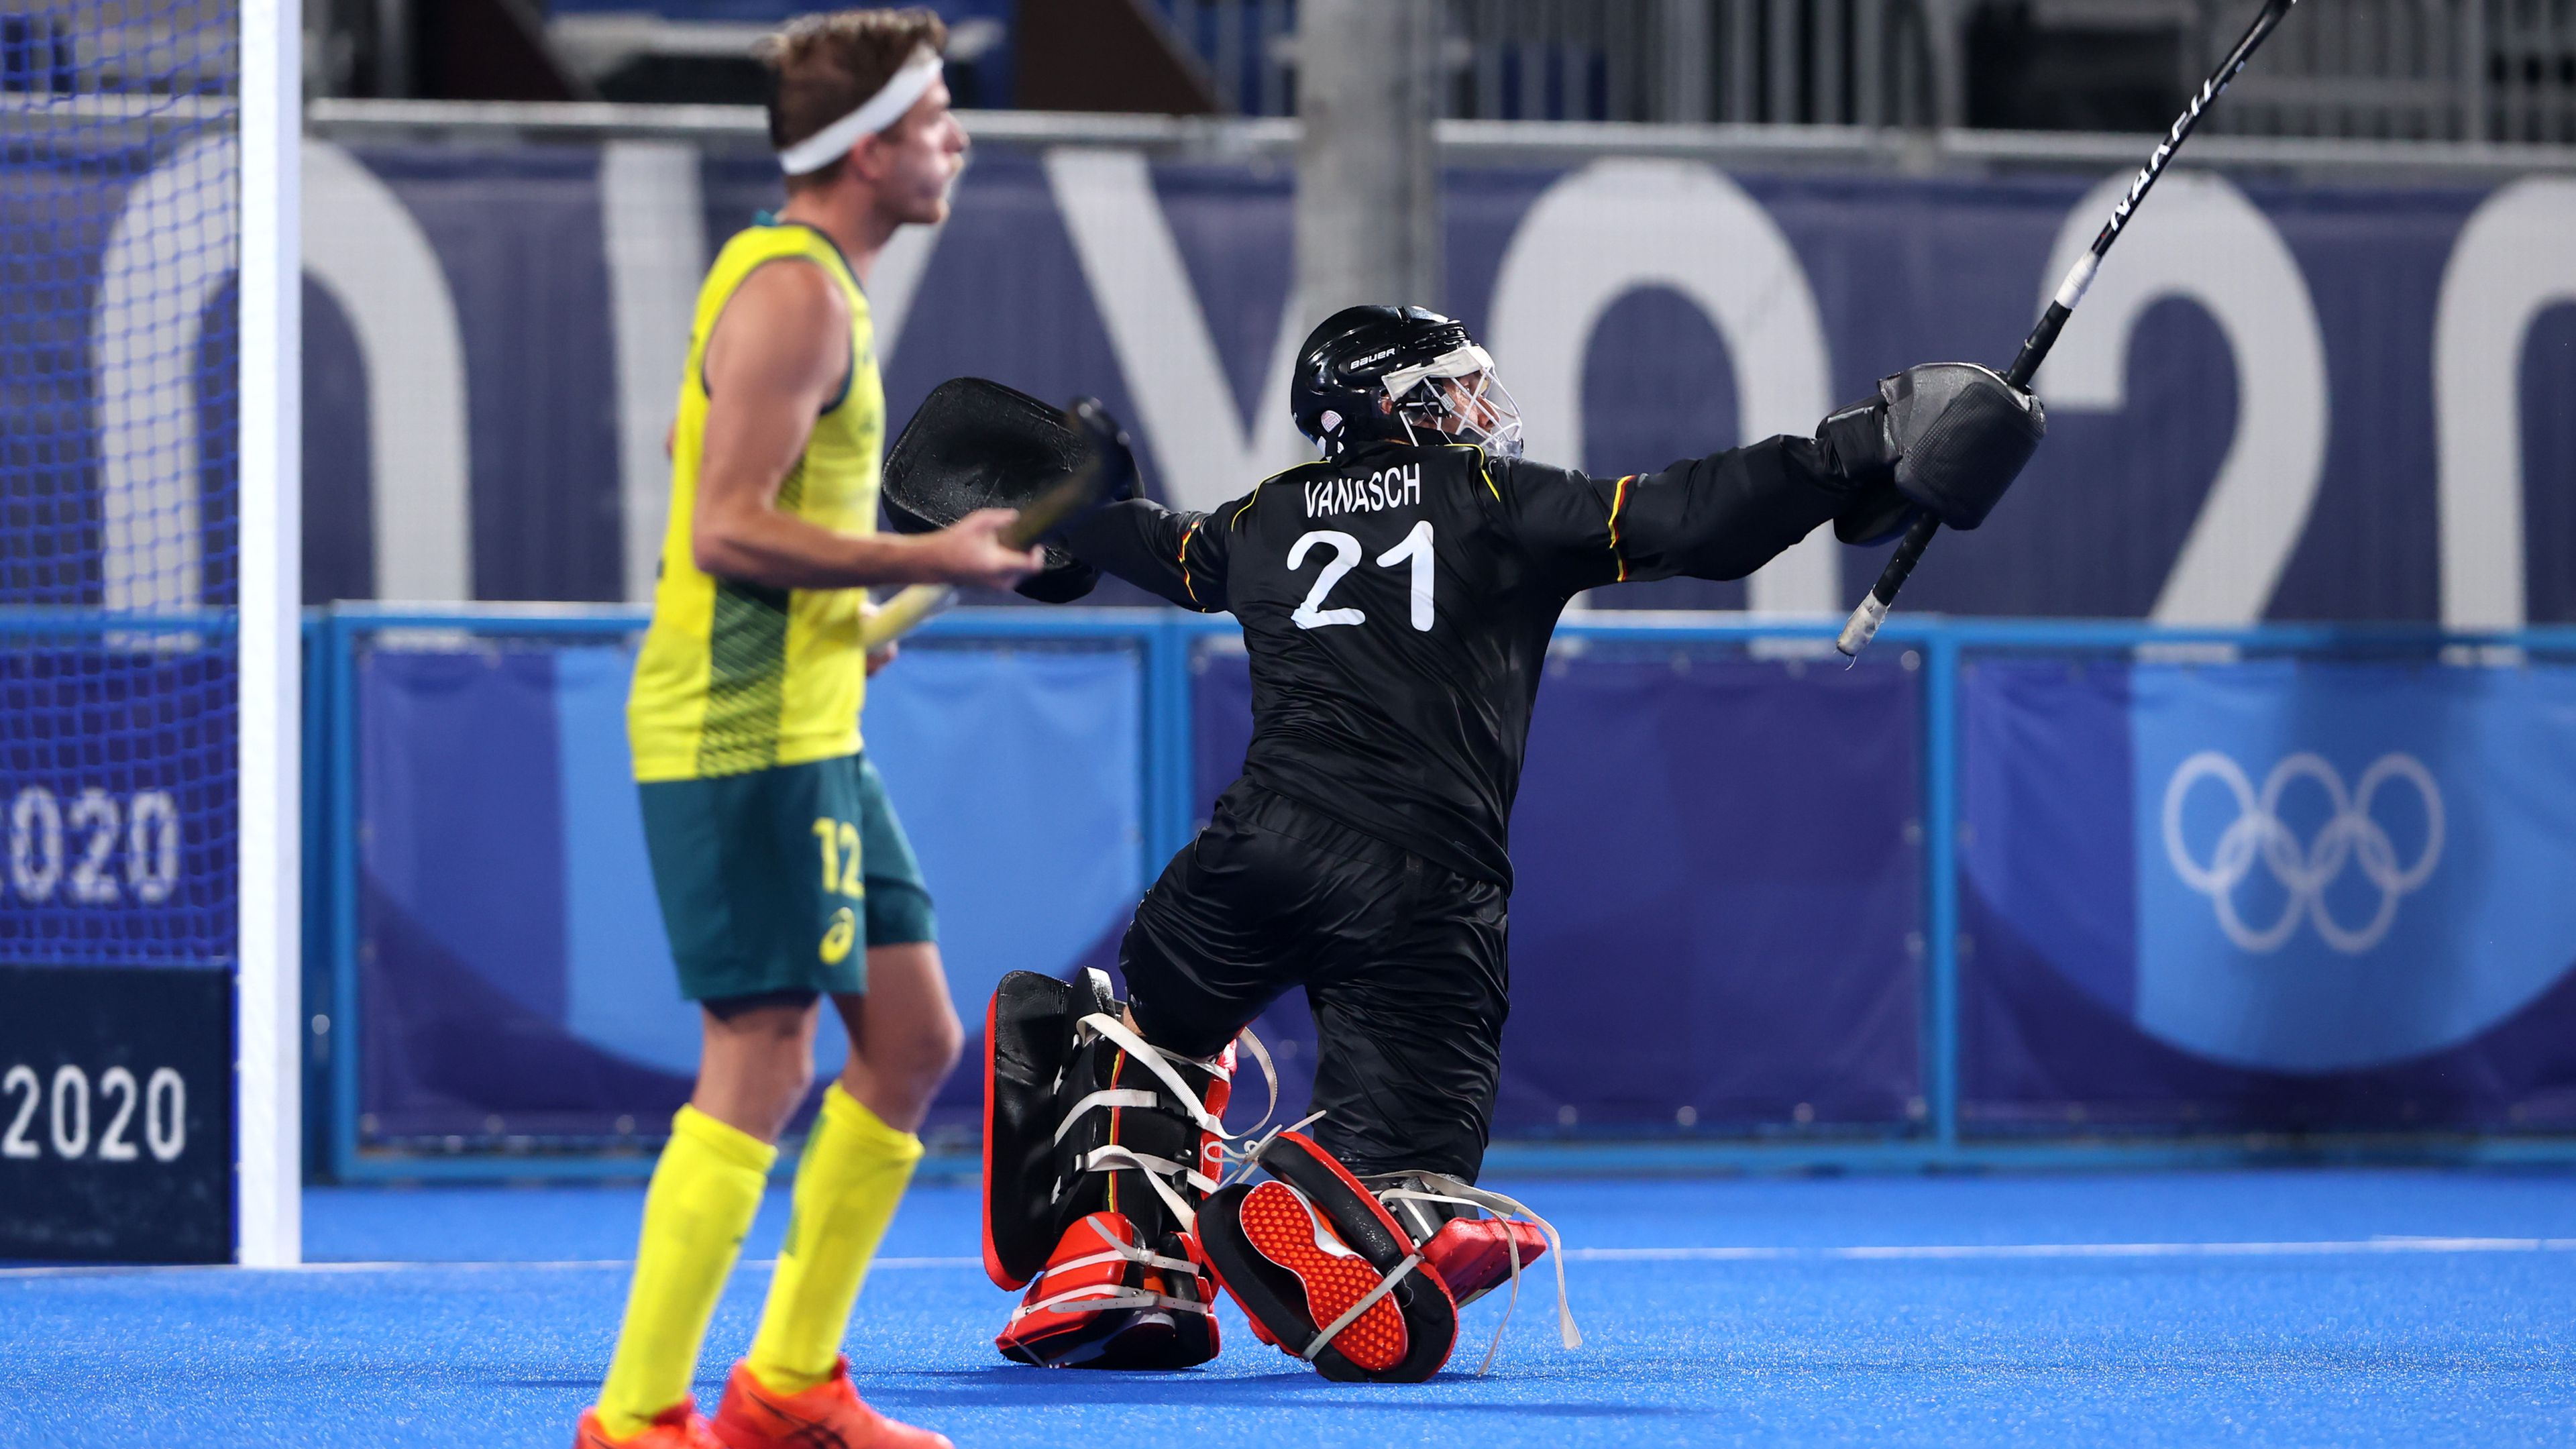 Australia takes silver in men's hockey at Tokyo Olympics after heartbreaking shootout